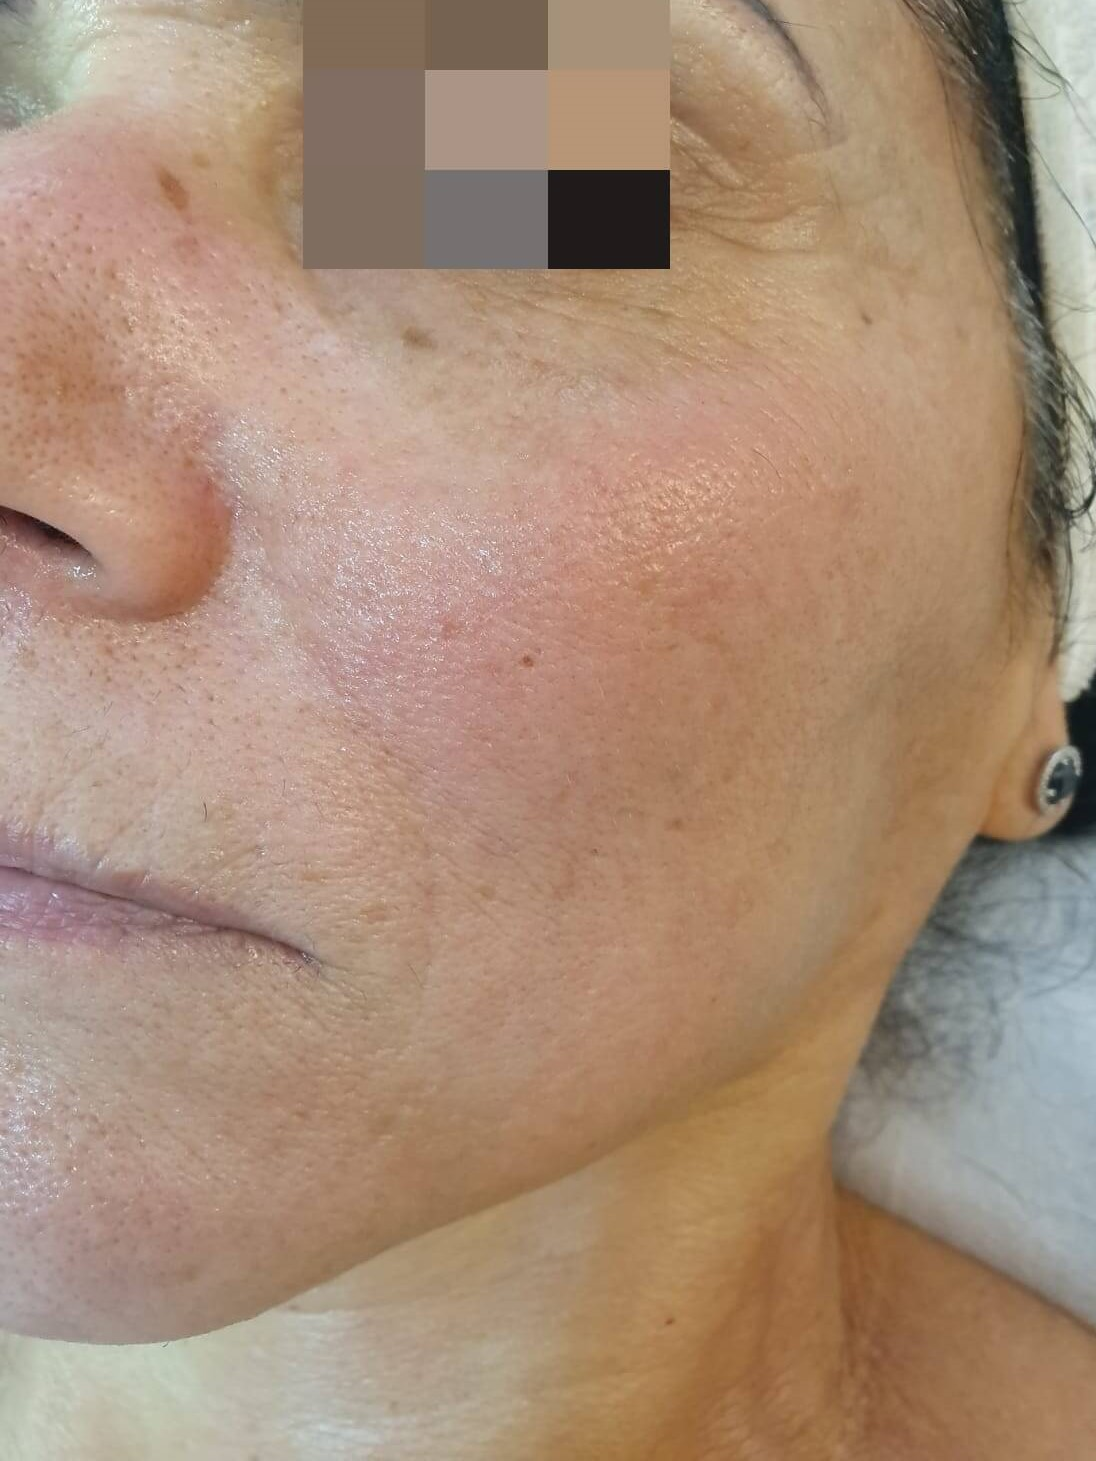 Face after treatment inAnti-Aging